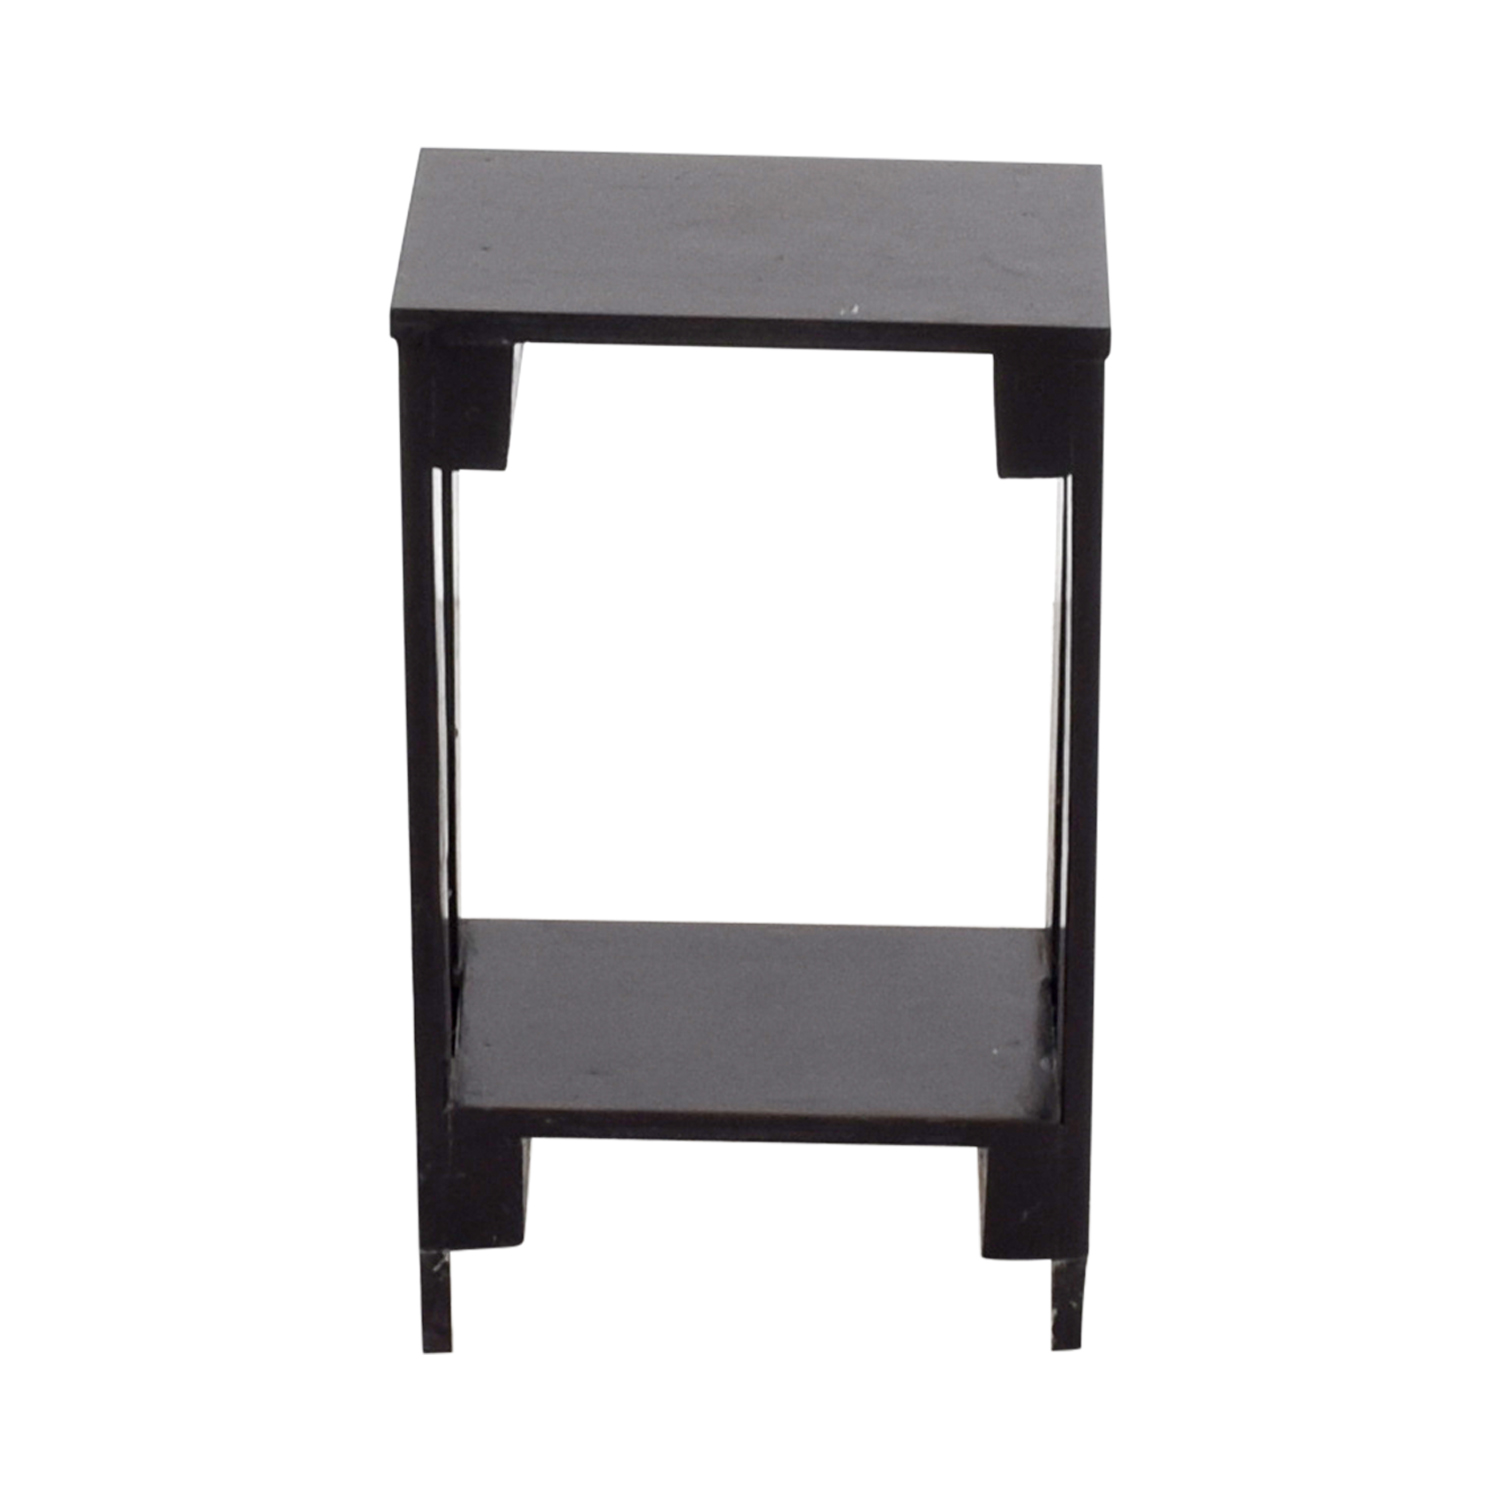 buy Small Black Table with Bottom Shelf online